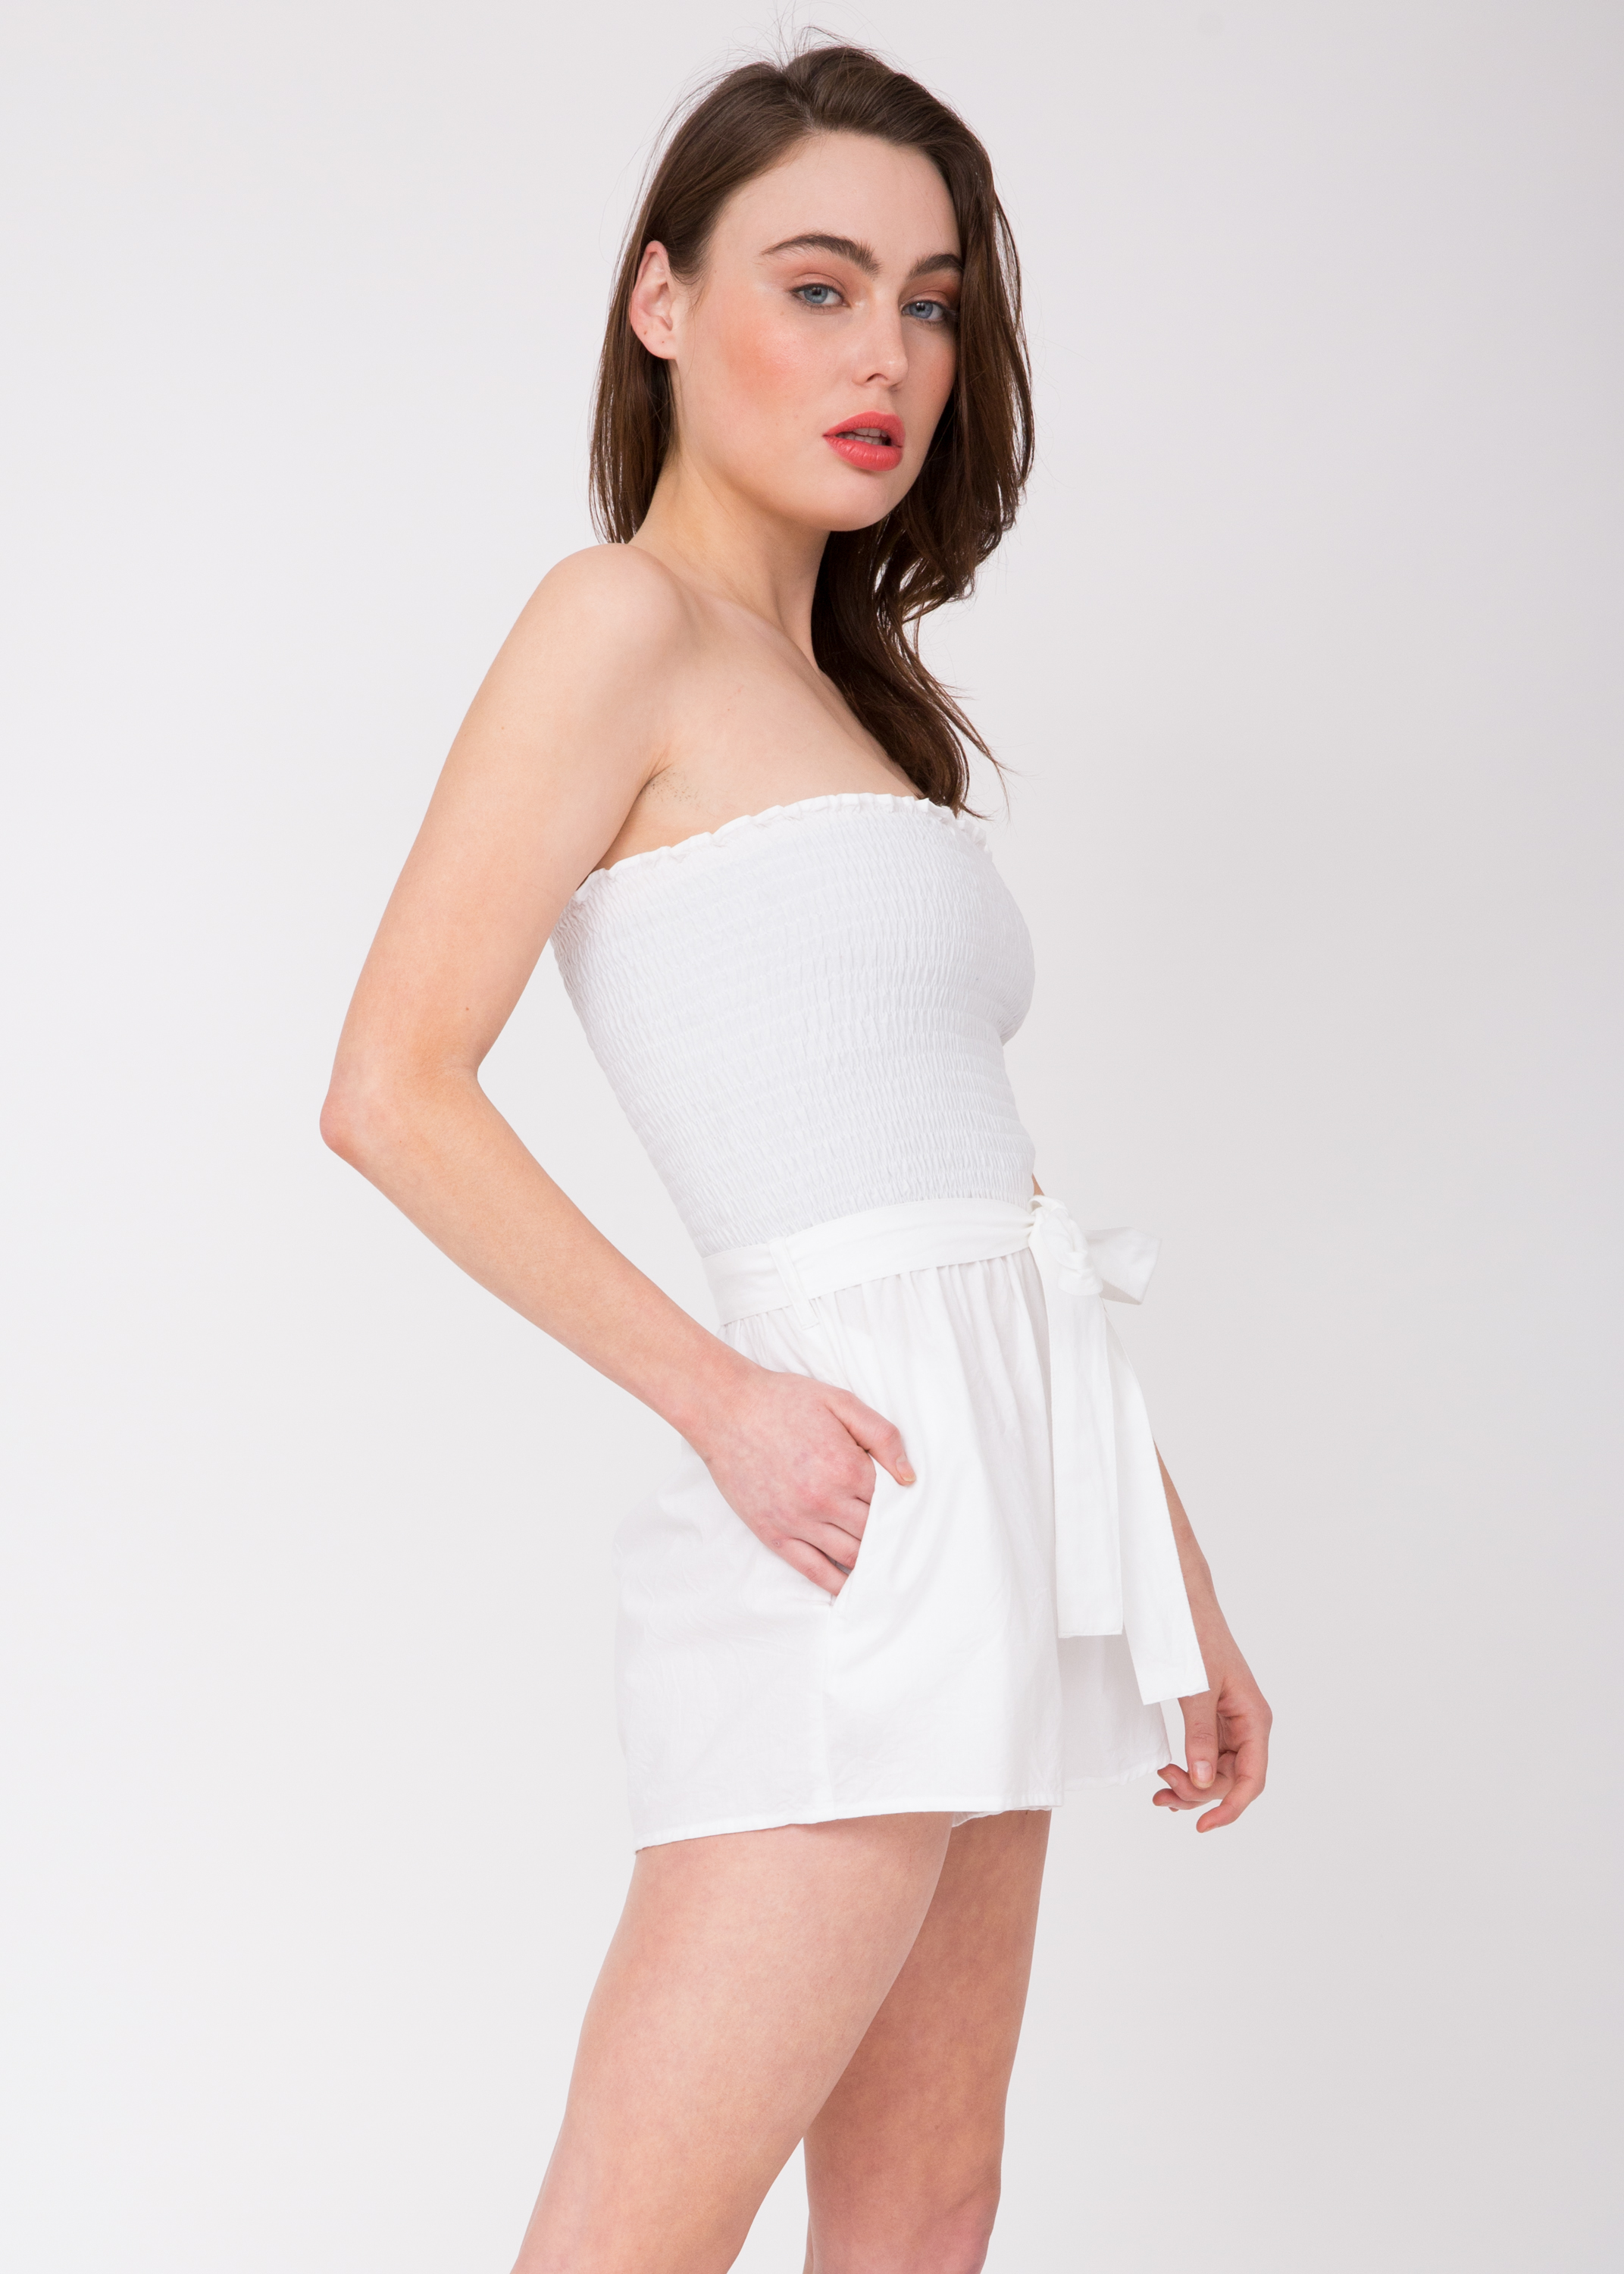 fdf6a8cbaa1 2 in 1 Bandeau Playsuit and Shorts White – likemary